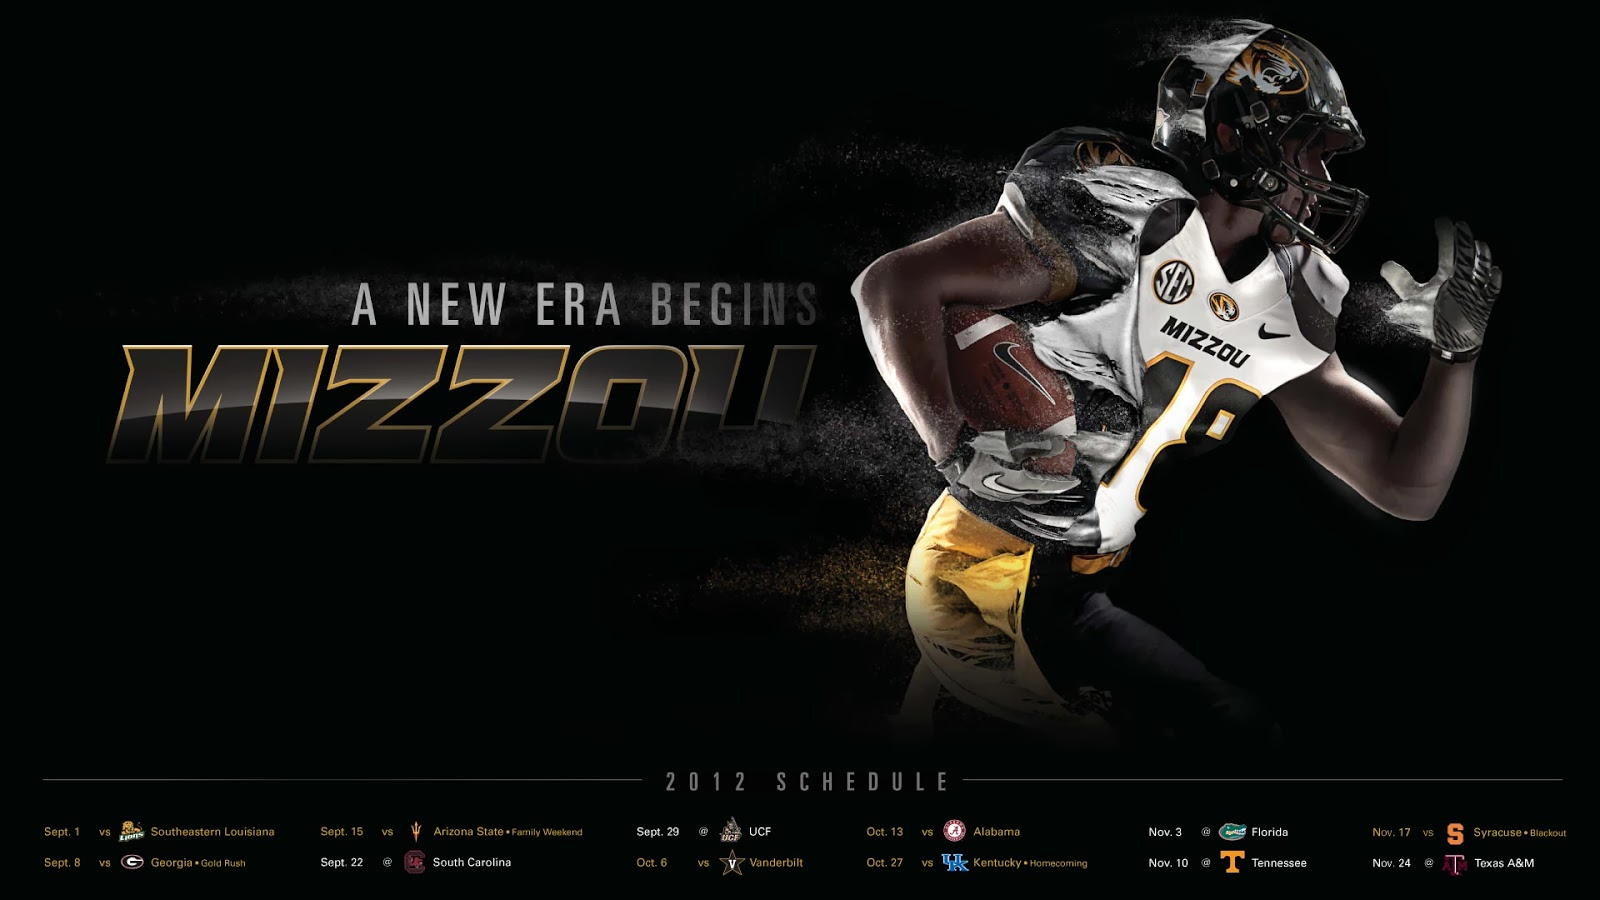 Mizzou Football Wallpapers   HD Wallpapers Nice HD Wallpapers 1080p 1600x900